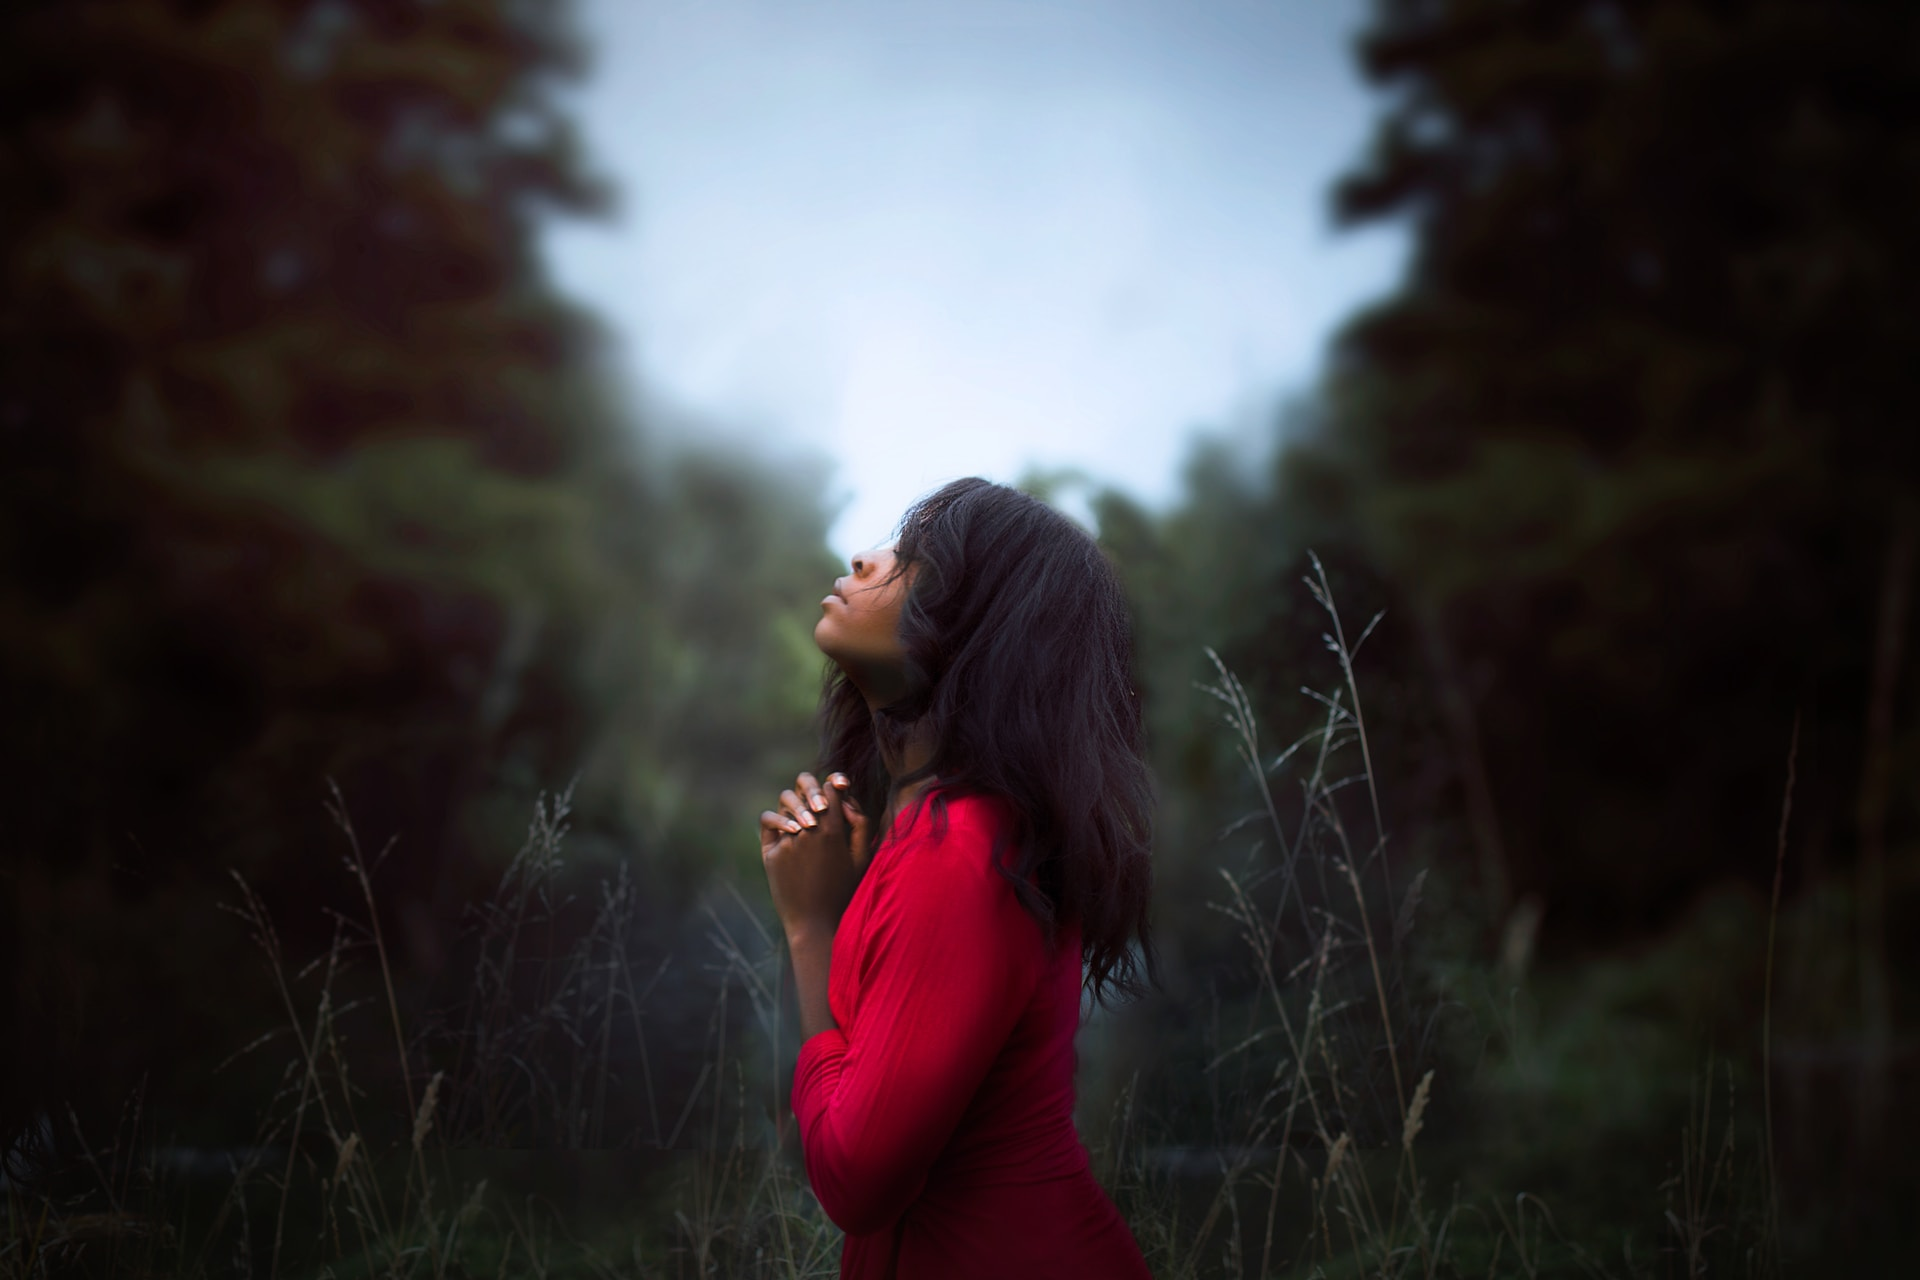 woman wearing red sweatshirt looking at top between trees near grass during daytime